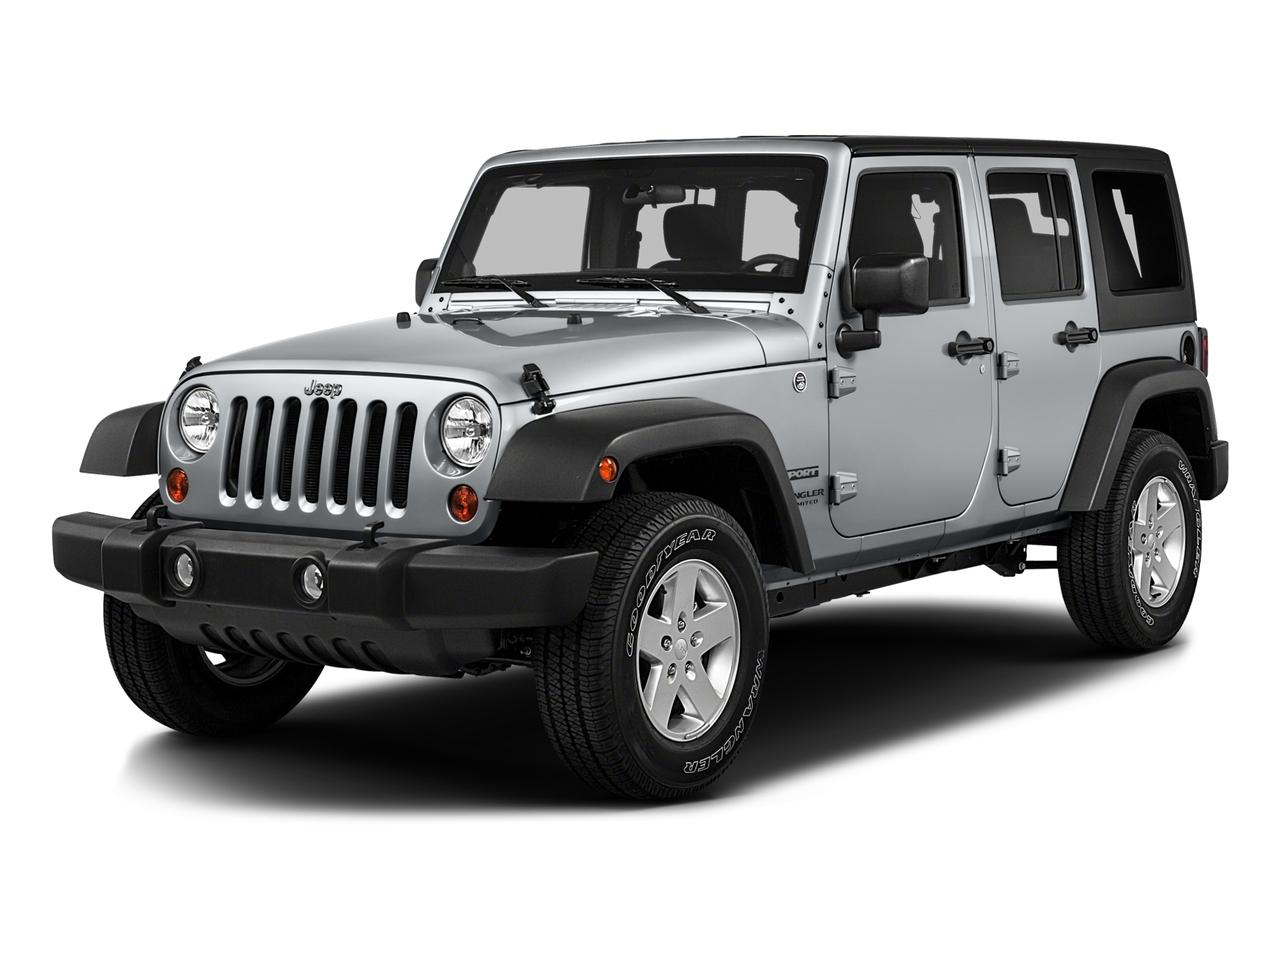 2016 Jeep Wrangler Unlimited Vehicle Photo in GREELEY, CO 80634-4125